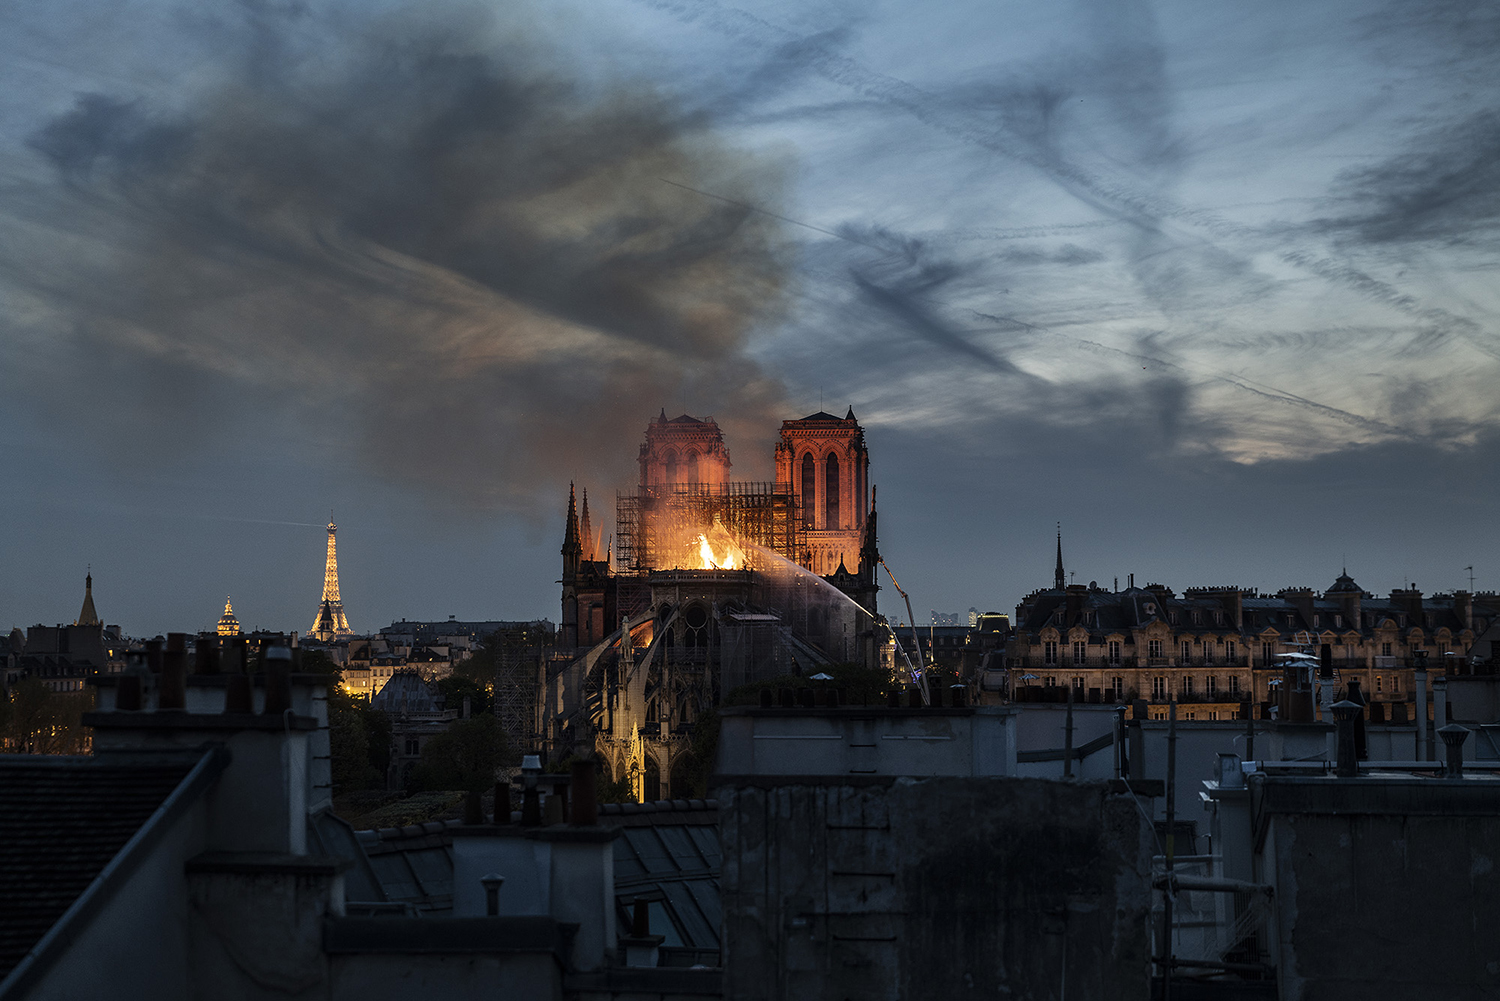 Smoke and flames rise from Notre-Dame Cathedral on April 15, 2019 in Paris, France. A fire broke out on Monday afternoon and quickly spread across the building, collapsing the spire. The cause is yet unknown but officials said it was possibly linked to ongoing renovation work.